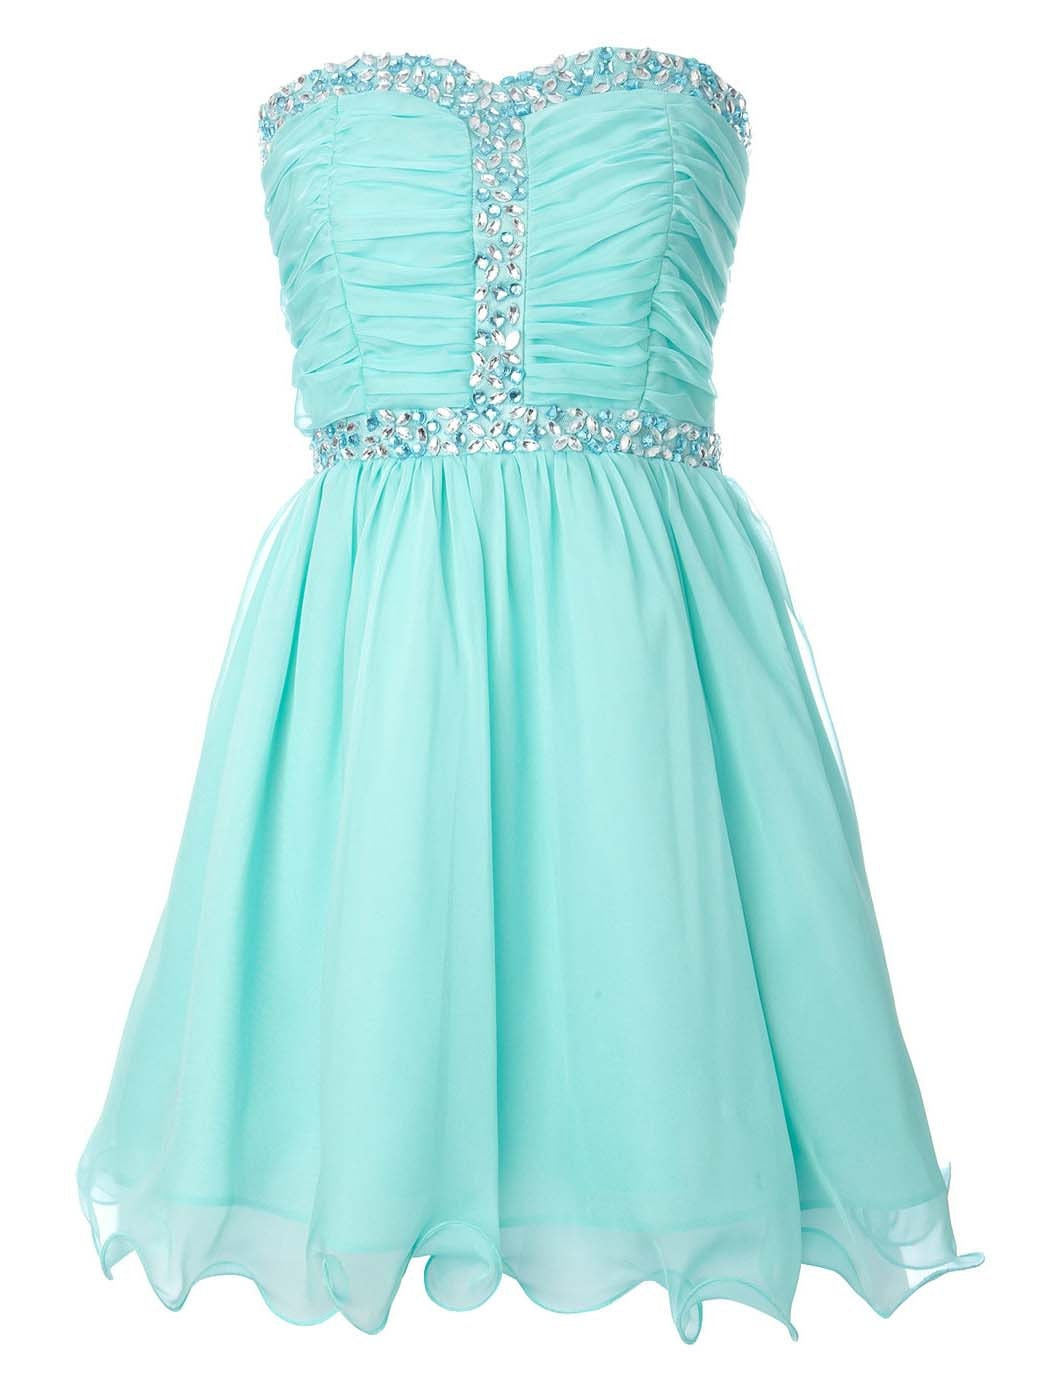 Cute Prom Dresses For 12 Year Olds - Cocktail Dresses